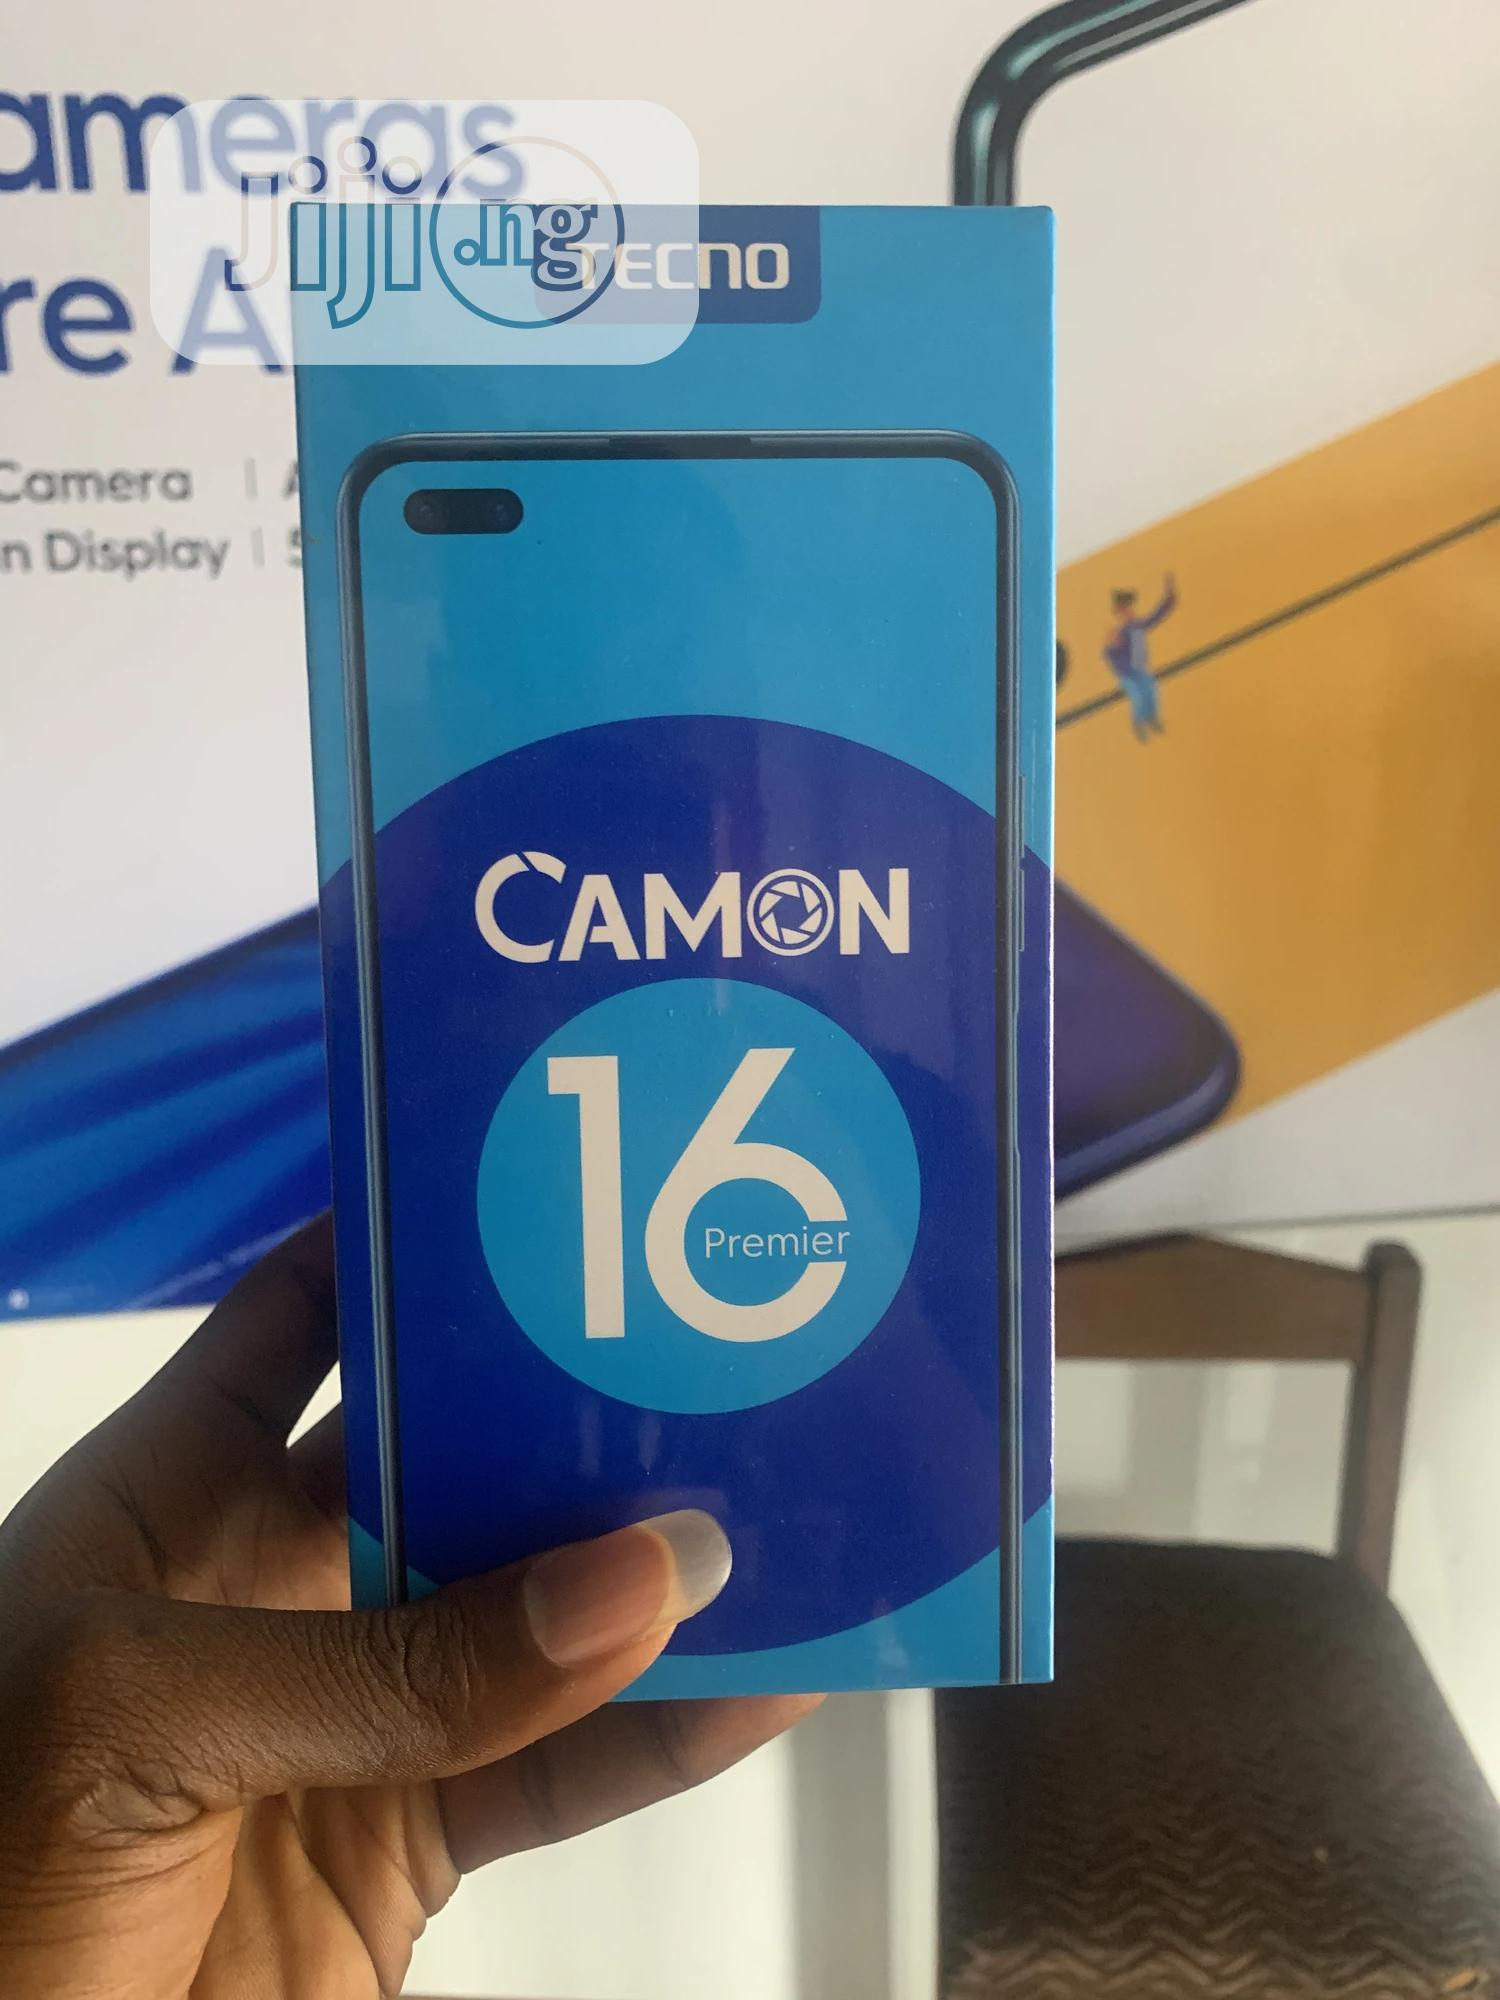 New Tecno Camon 16 Premier 128GB